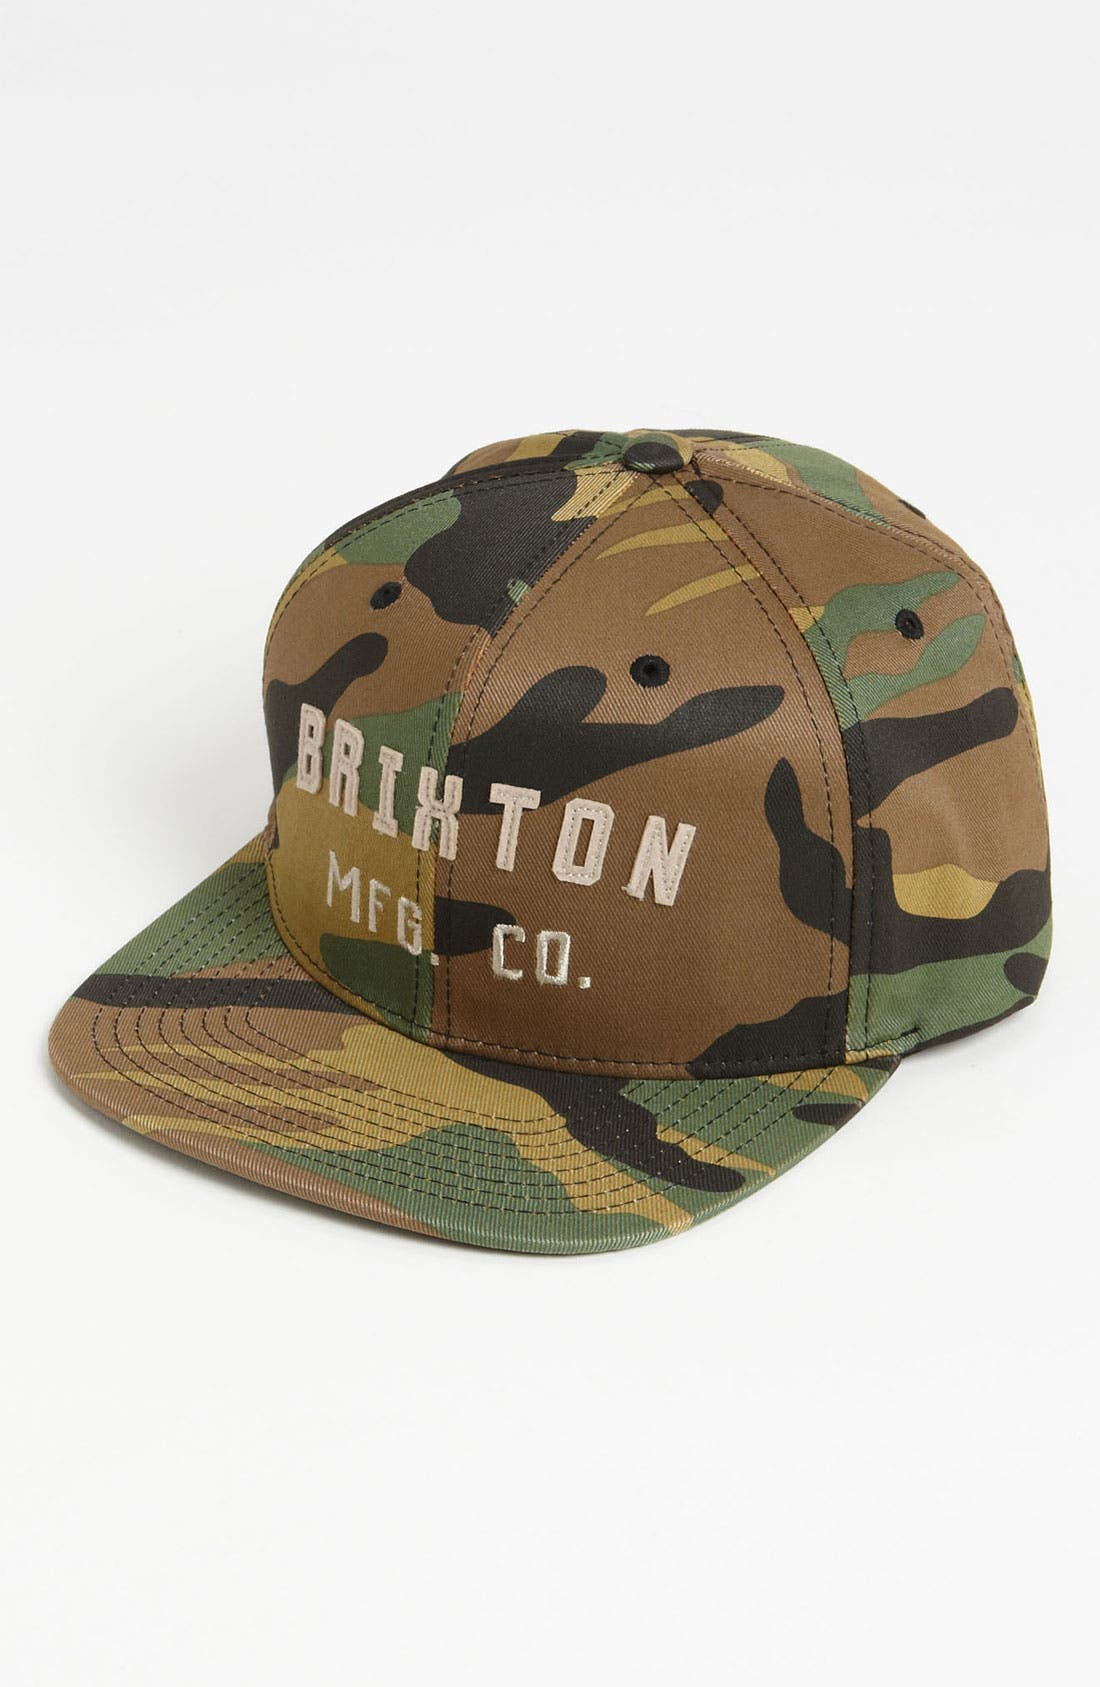 Alternate Image 1 Selected - Brixton 'Arden' Snapback Cap